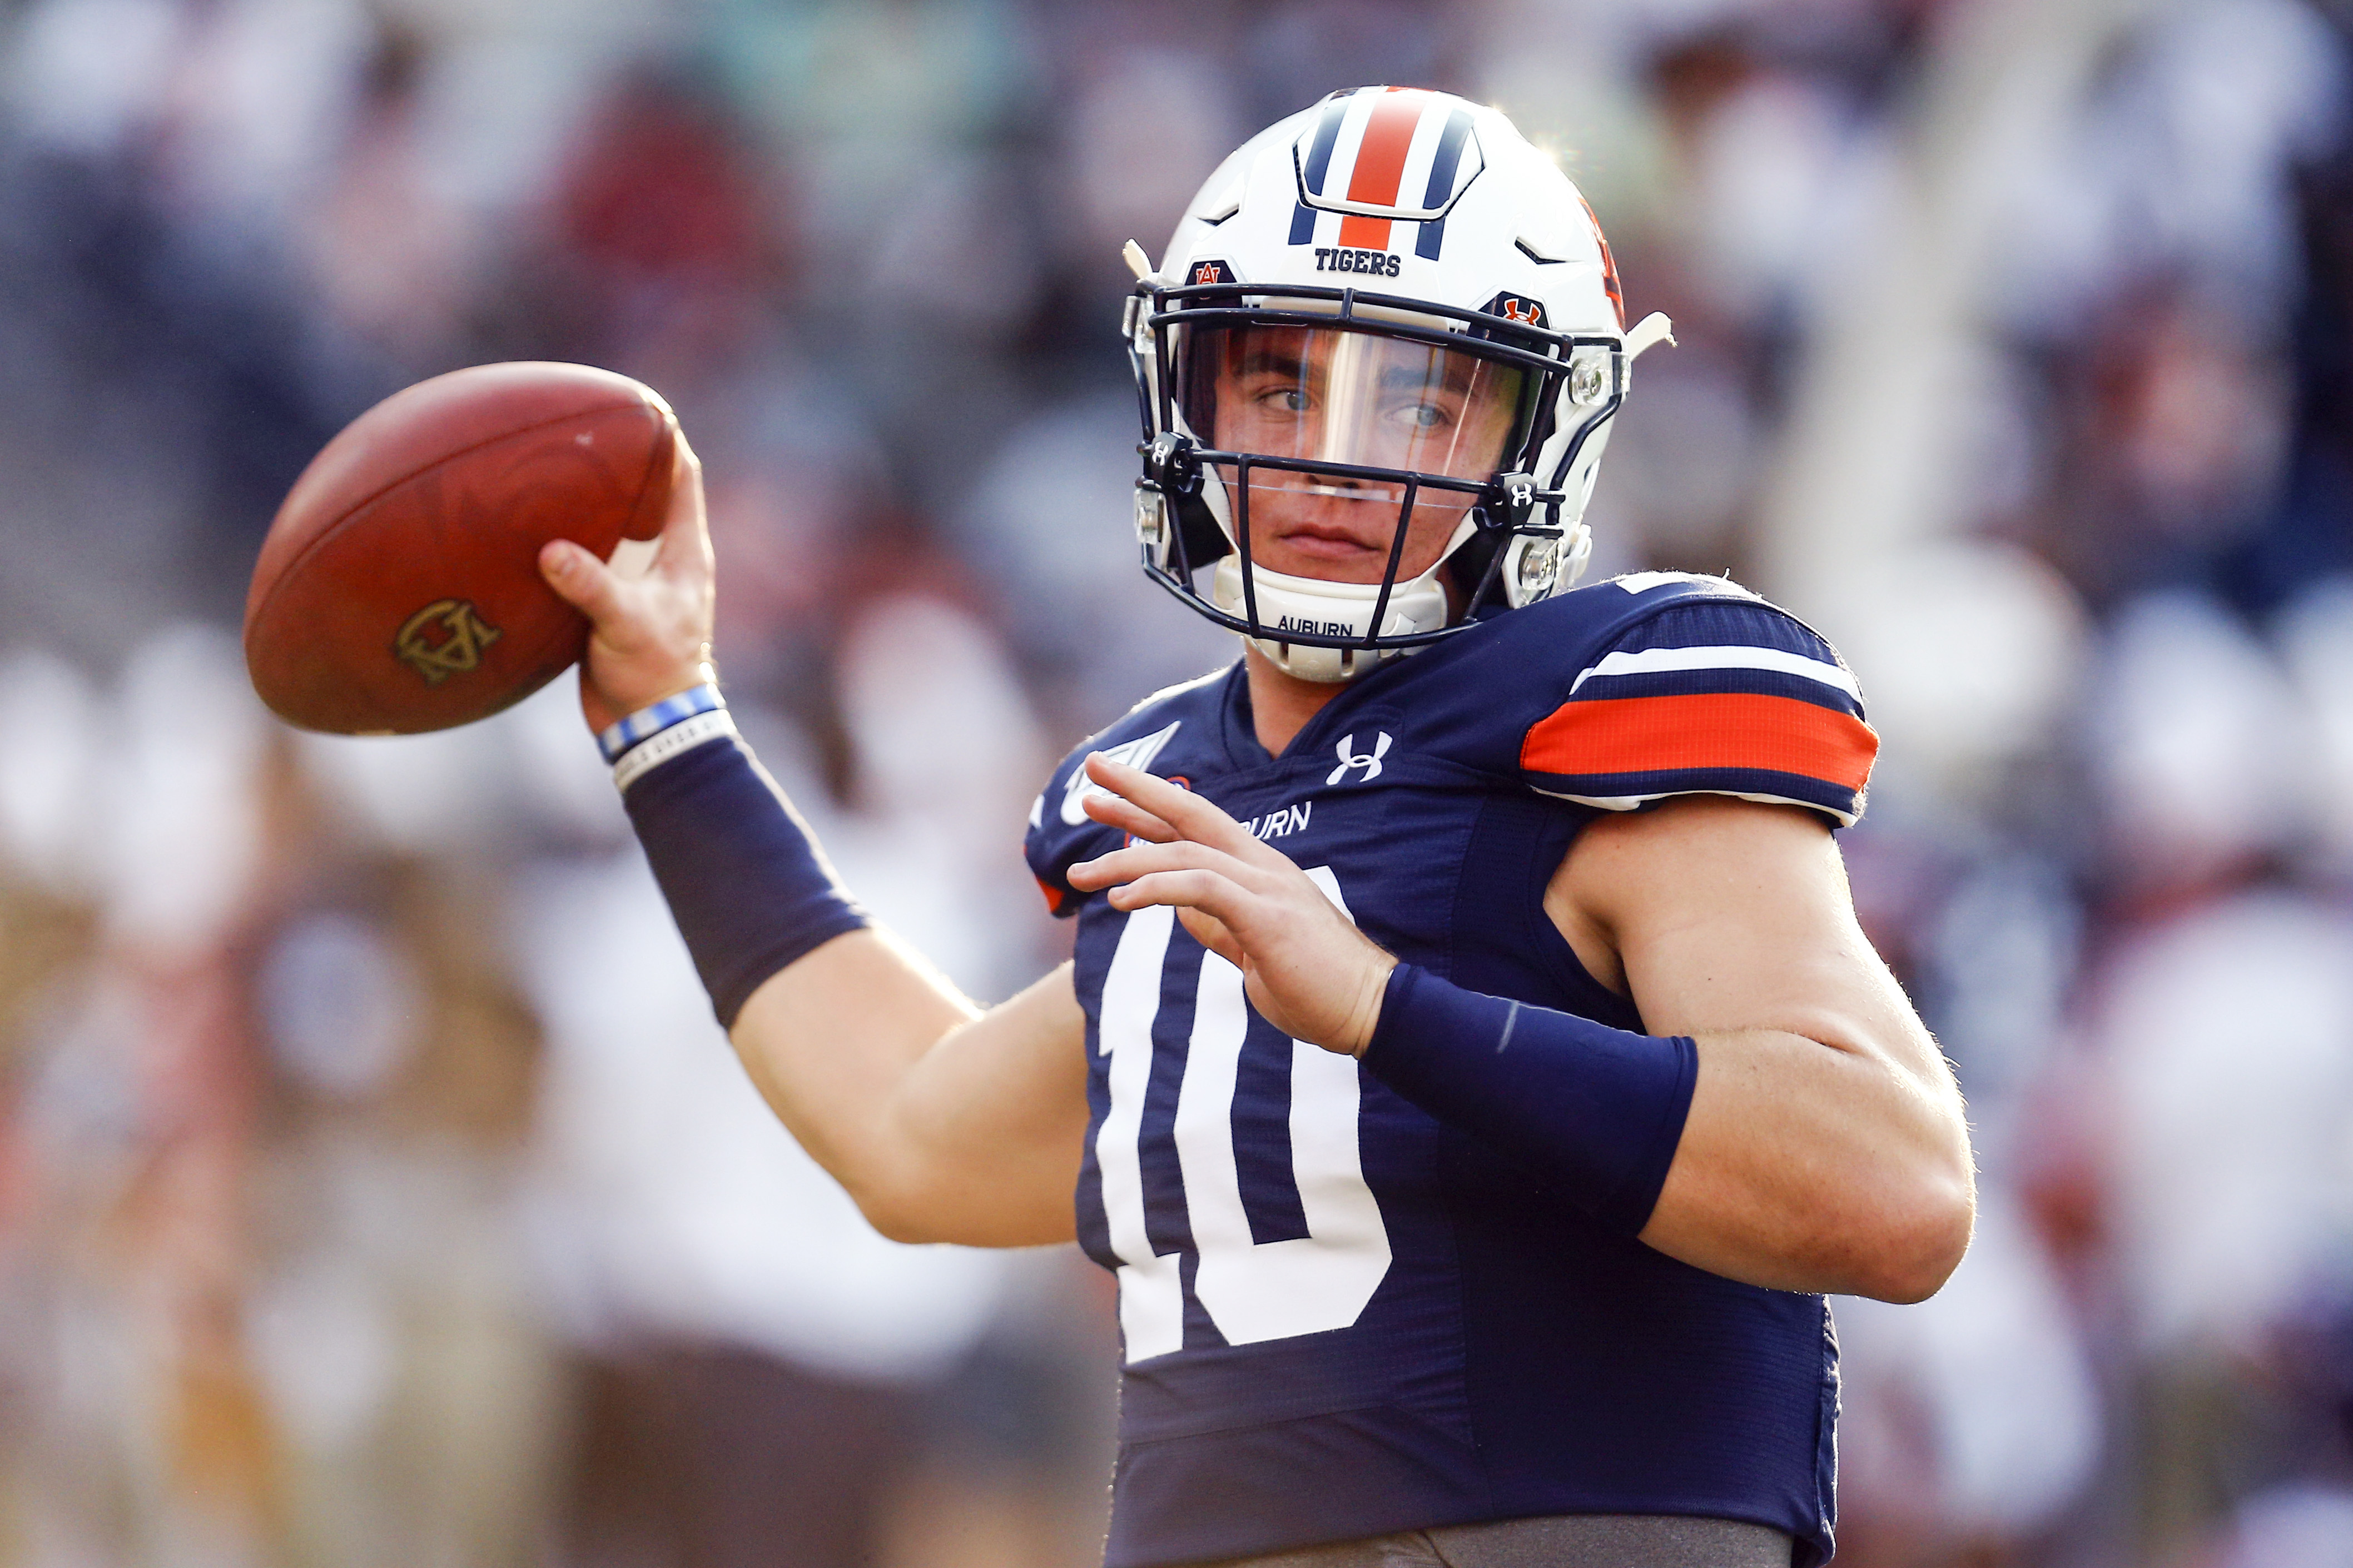 Auburn Deserves To Be No In College Football Rankings The Washington Post